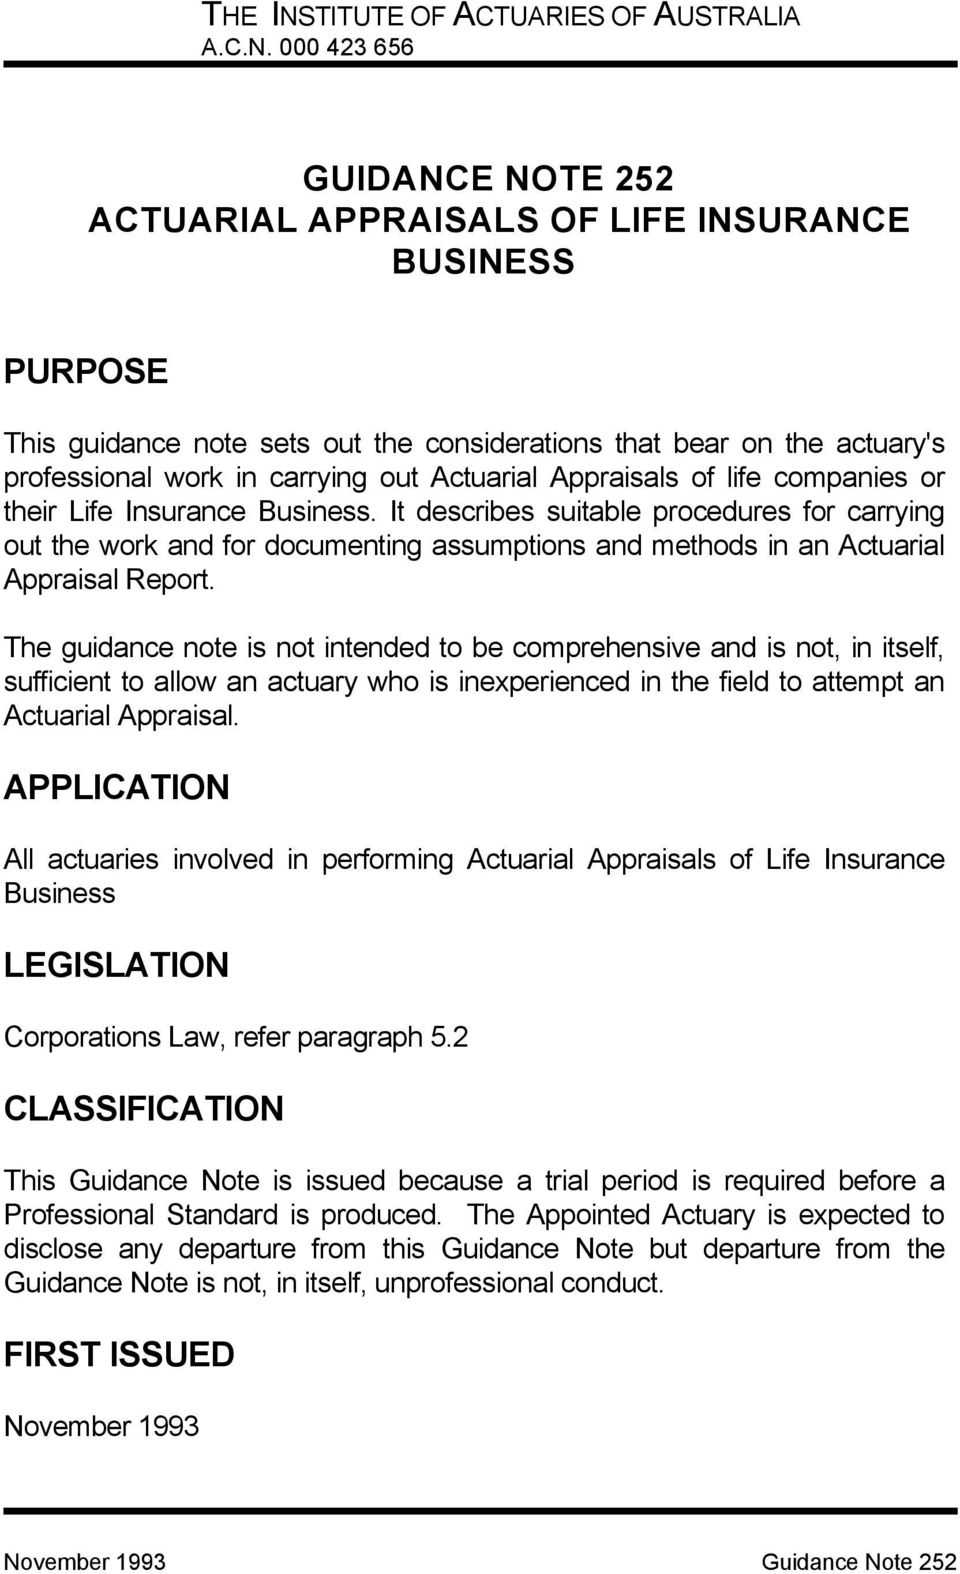 000 423 656 GUIDANCE NOTE 252 ACTUARIAL APPRAISALS OF LIFE INSURANCE BUSINESS PURPOSE This guidance note sets out the considerations that bear on the actuary's professional work in carrying out